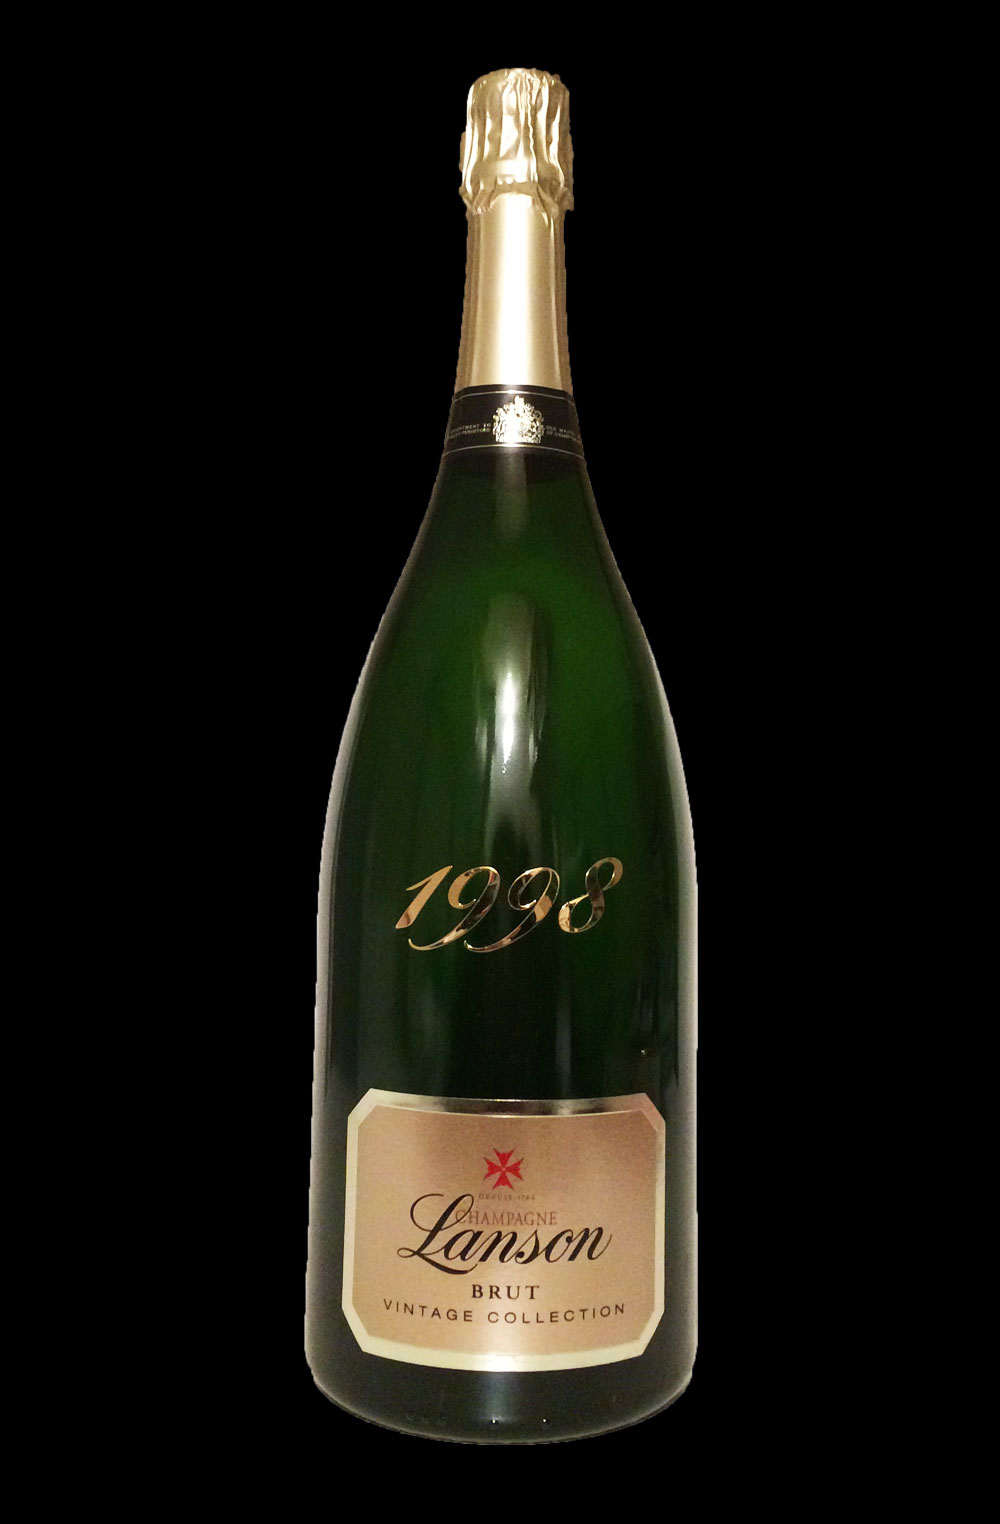 Wine Review: Champagne Lanson Brut, 1998 - EAT LOVE SAVOR